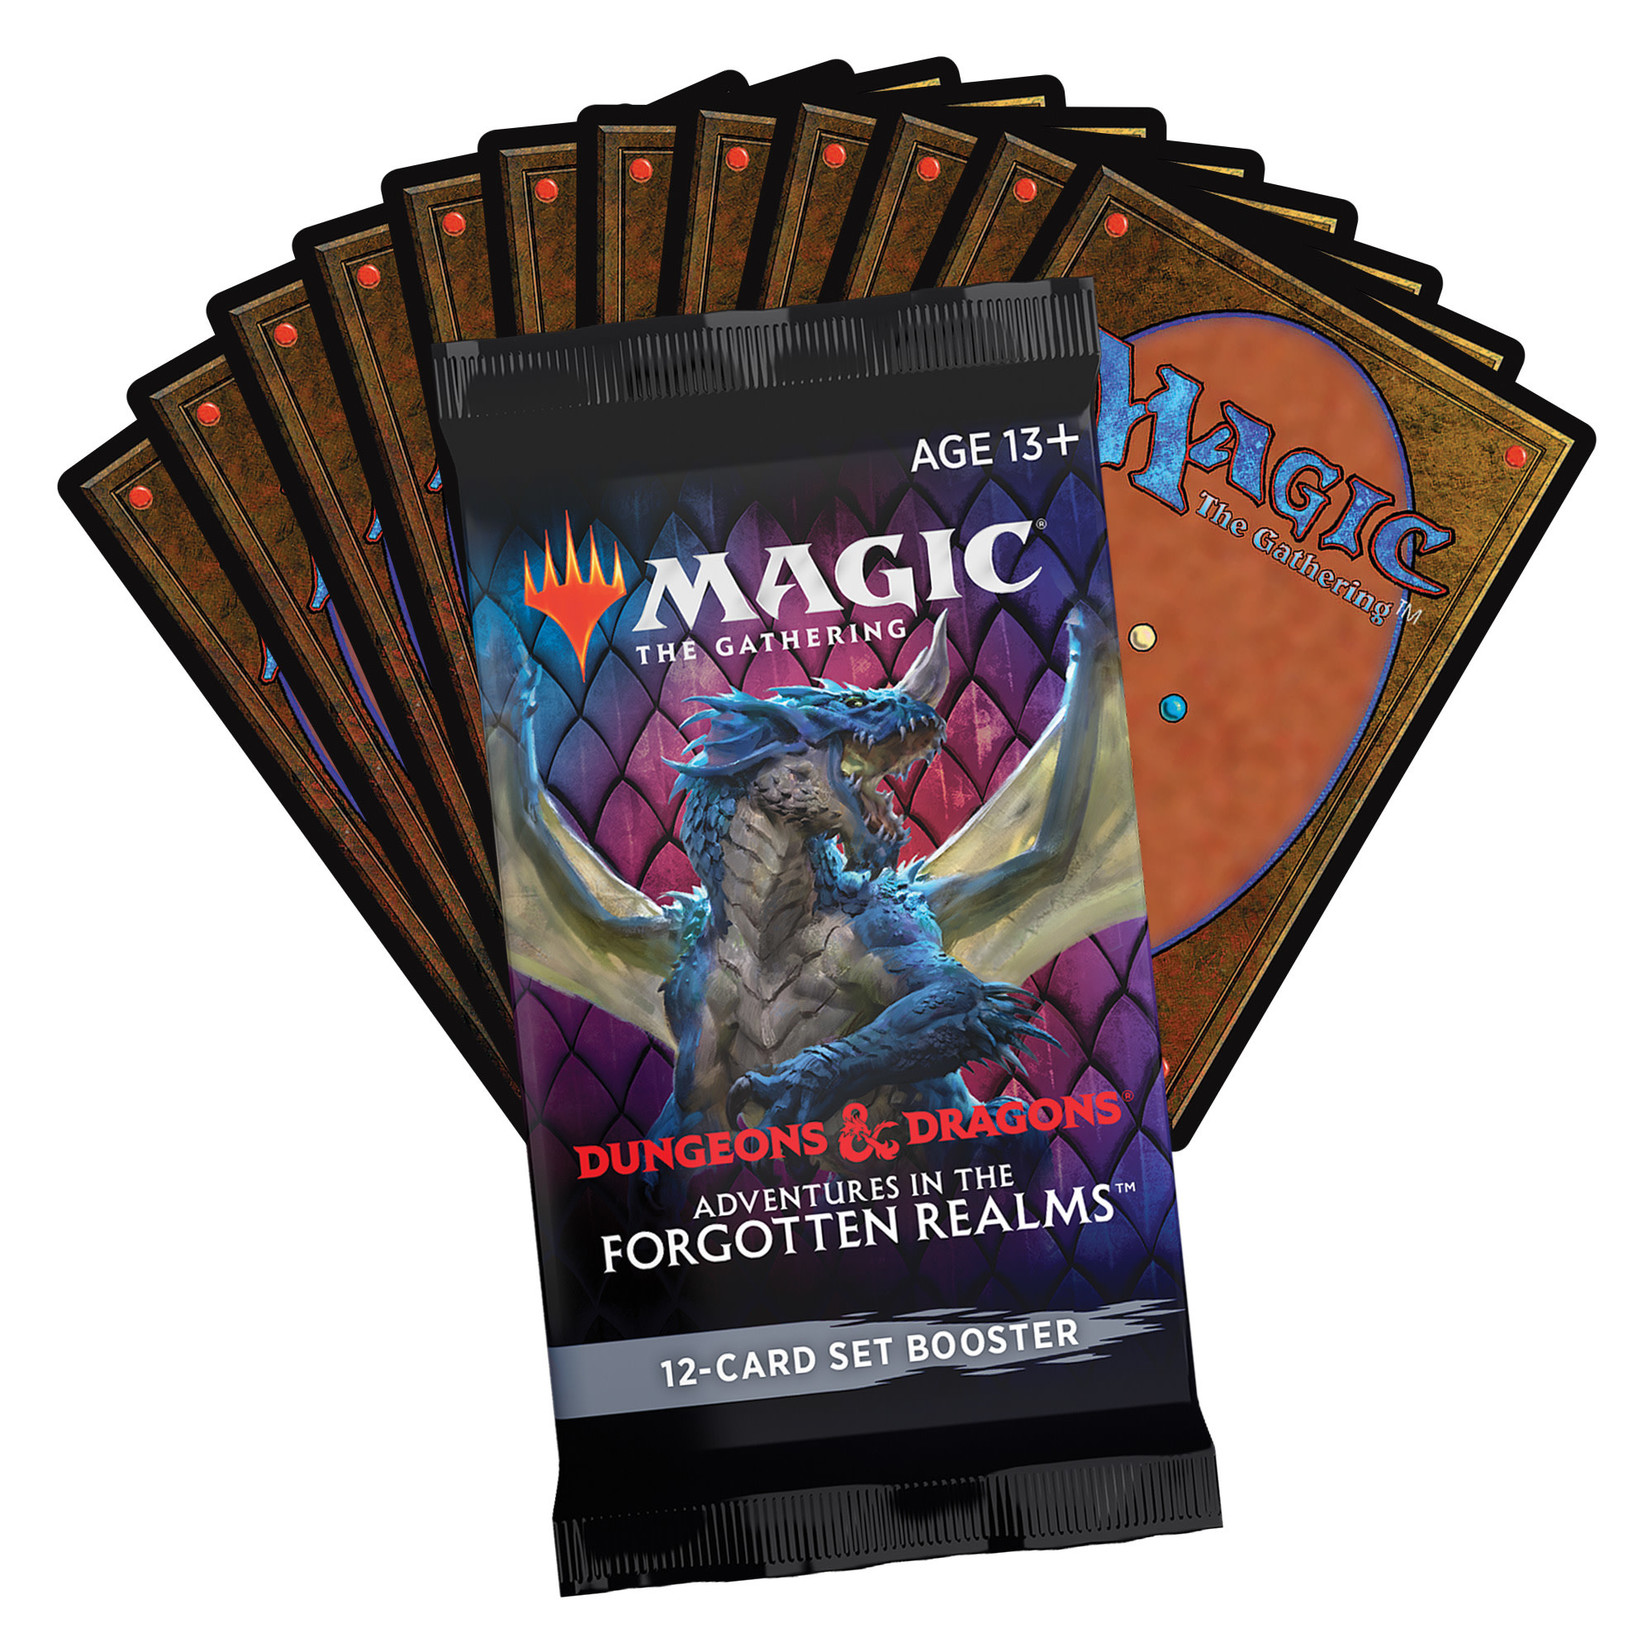 Magic: The Gathering Magic: The Gathering - Adventures in the Forgotten Realms Set Booster Box